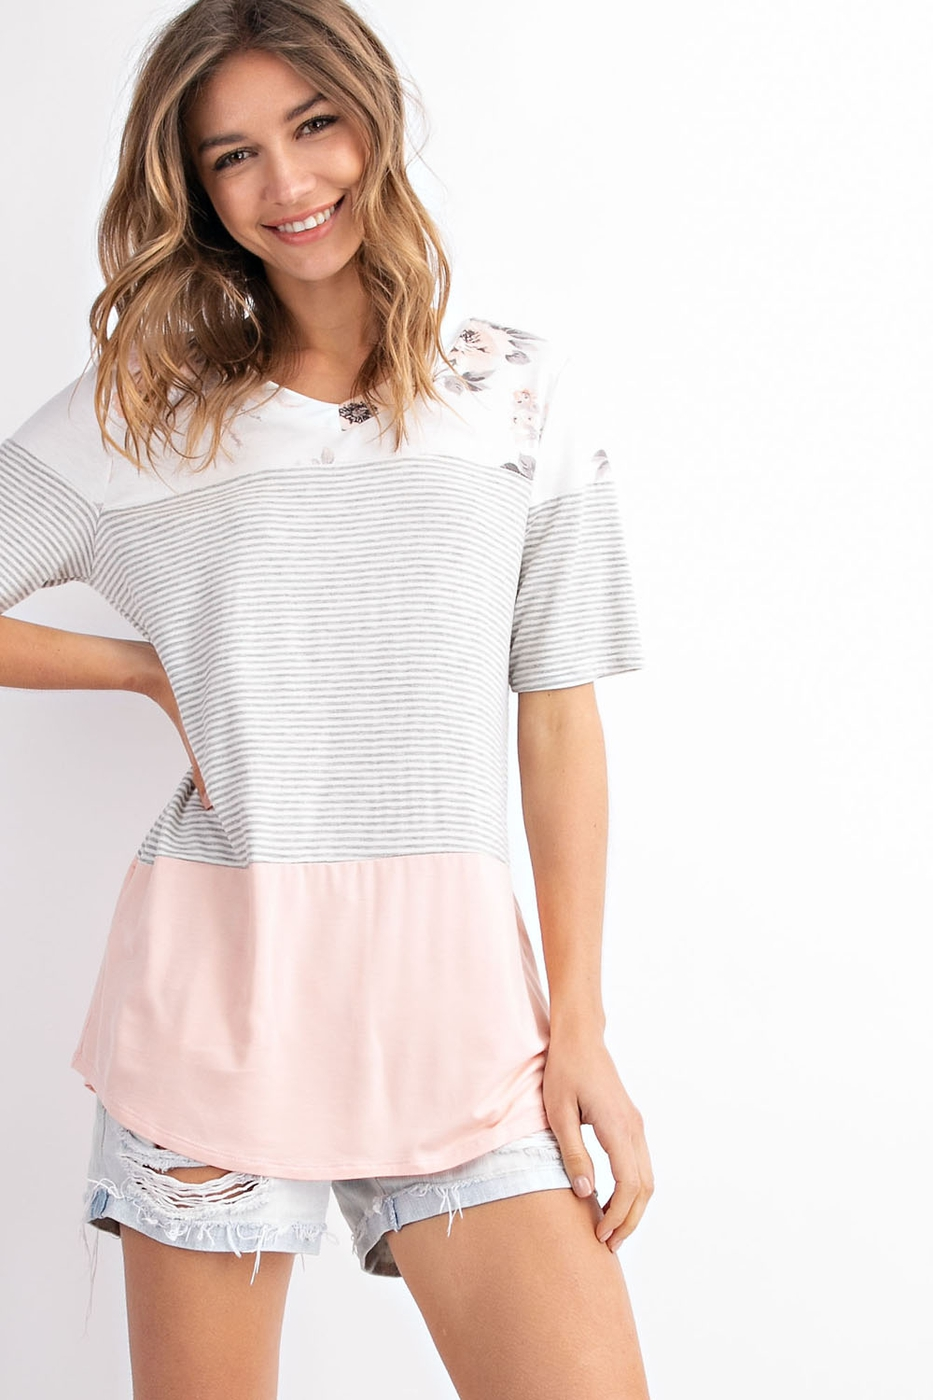 7457a442c992f8 Floral french terry color block V-neck short sleeve top - Ivy and ...